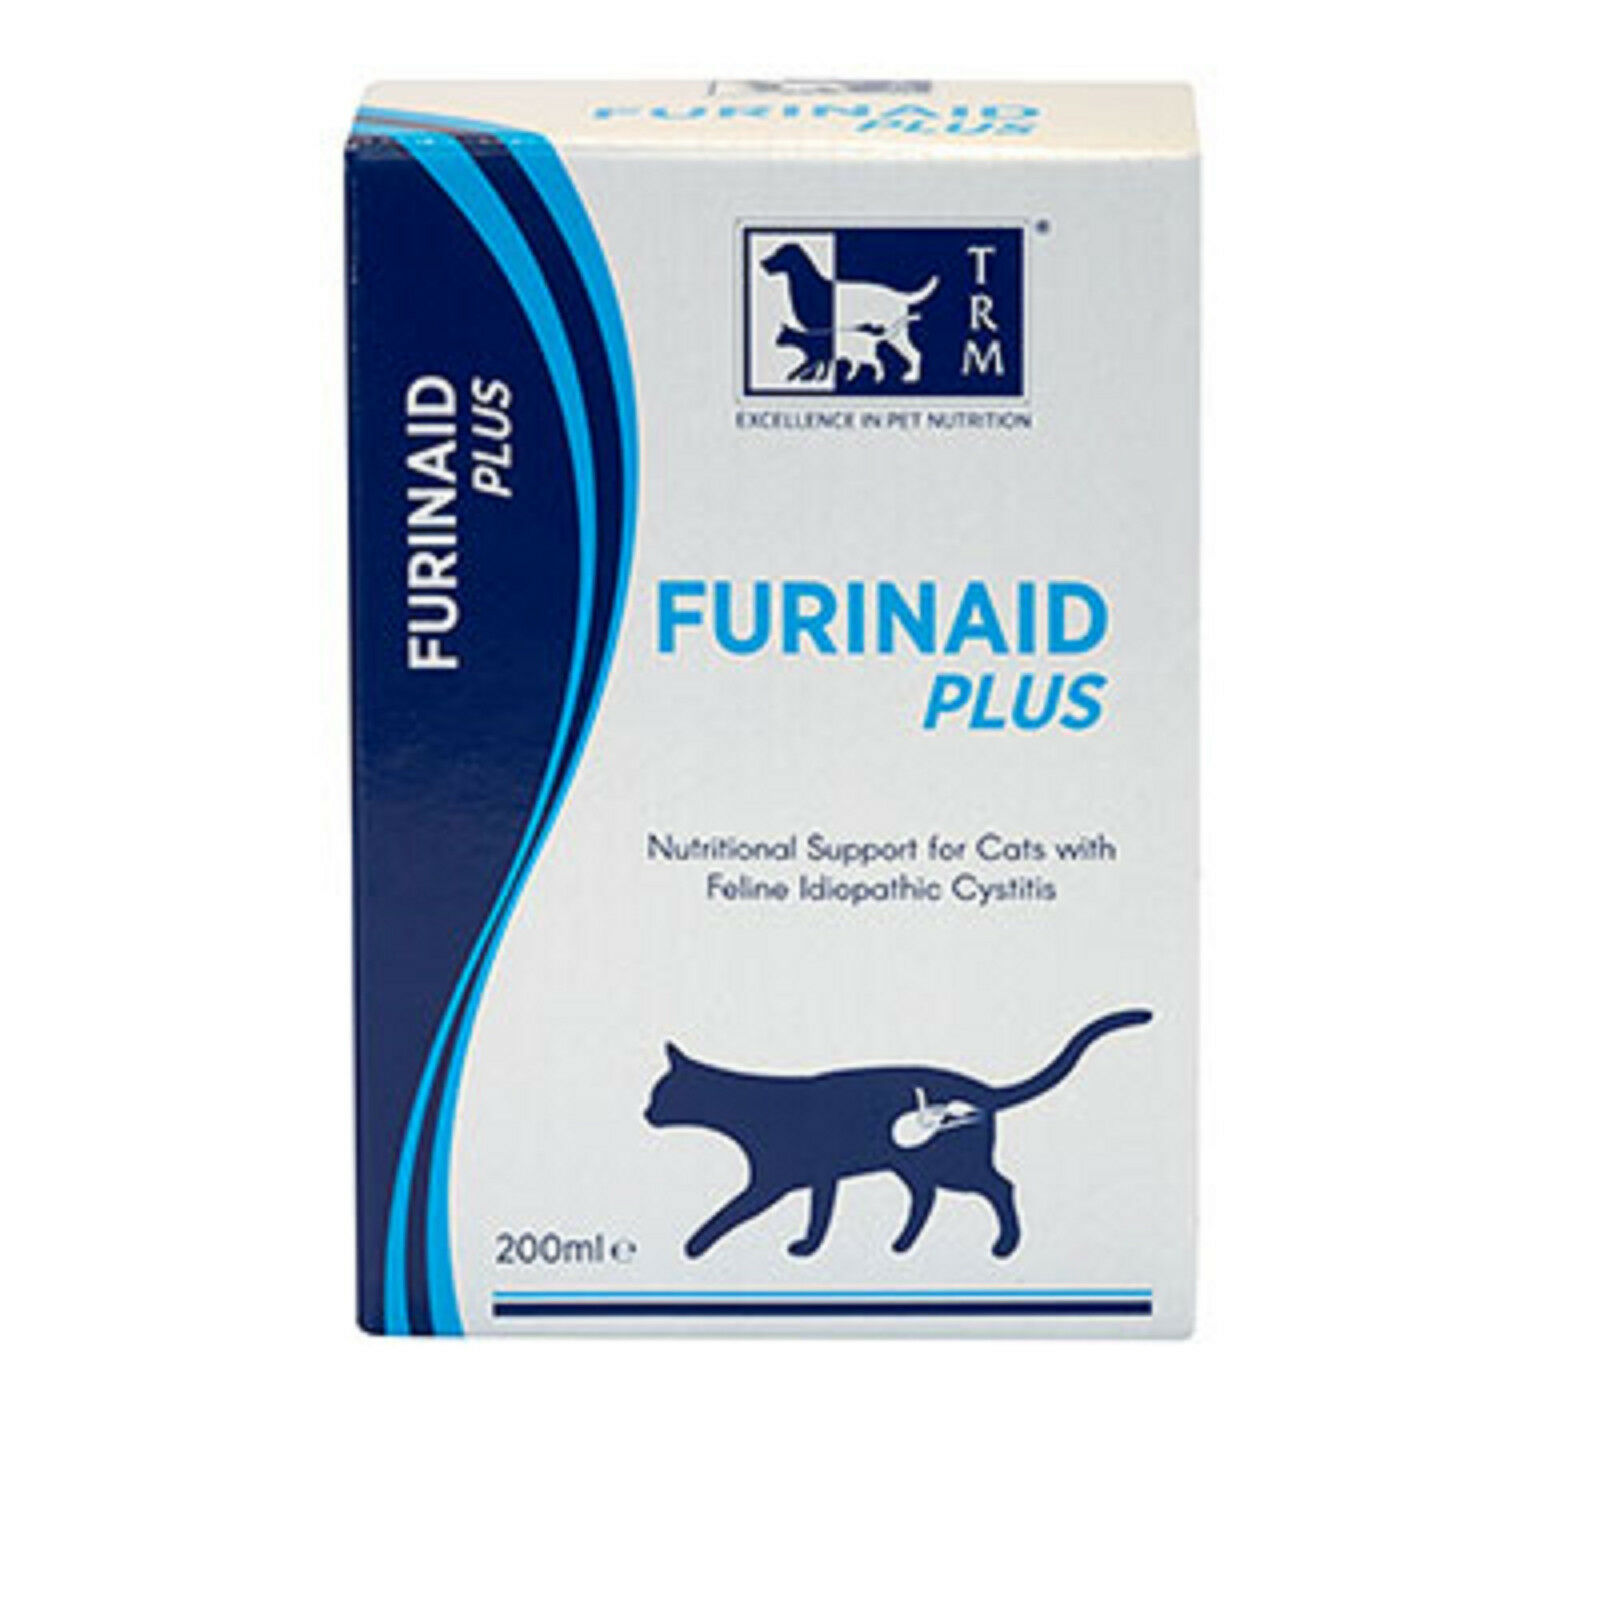 Furinaid Feline Urinary Cat Glucosamine Supplemet Premium Service Fast Dispatch.